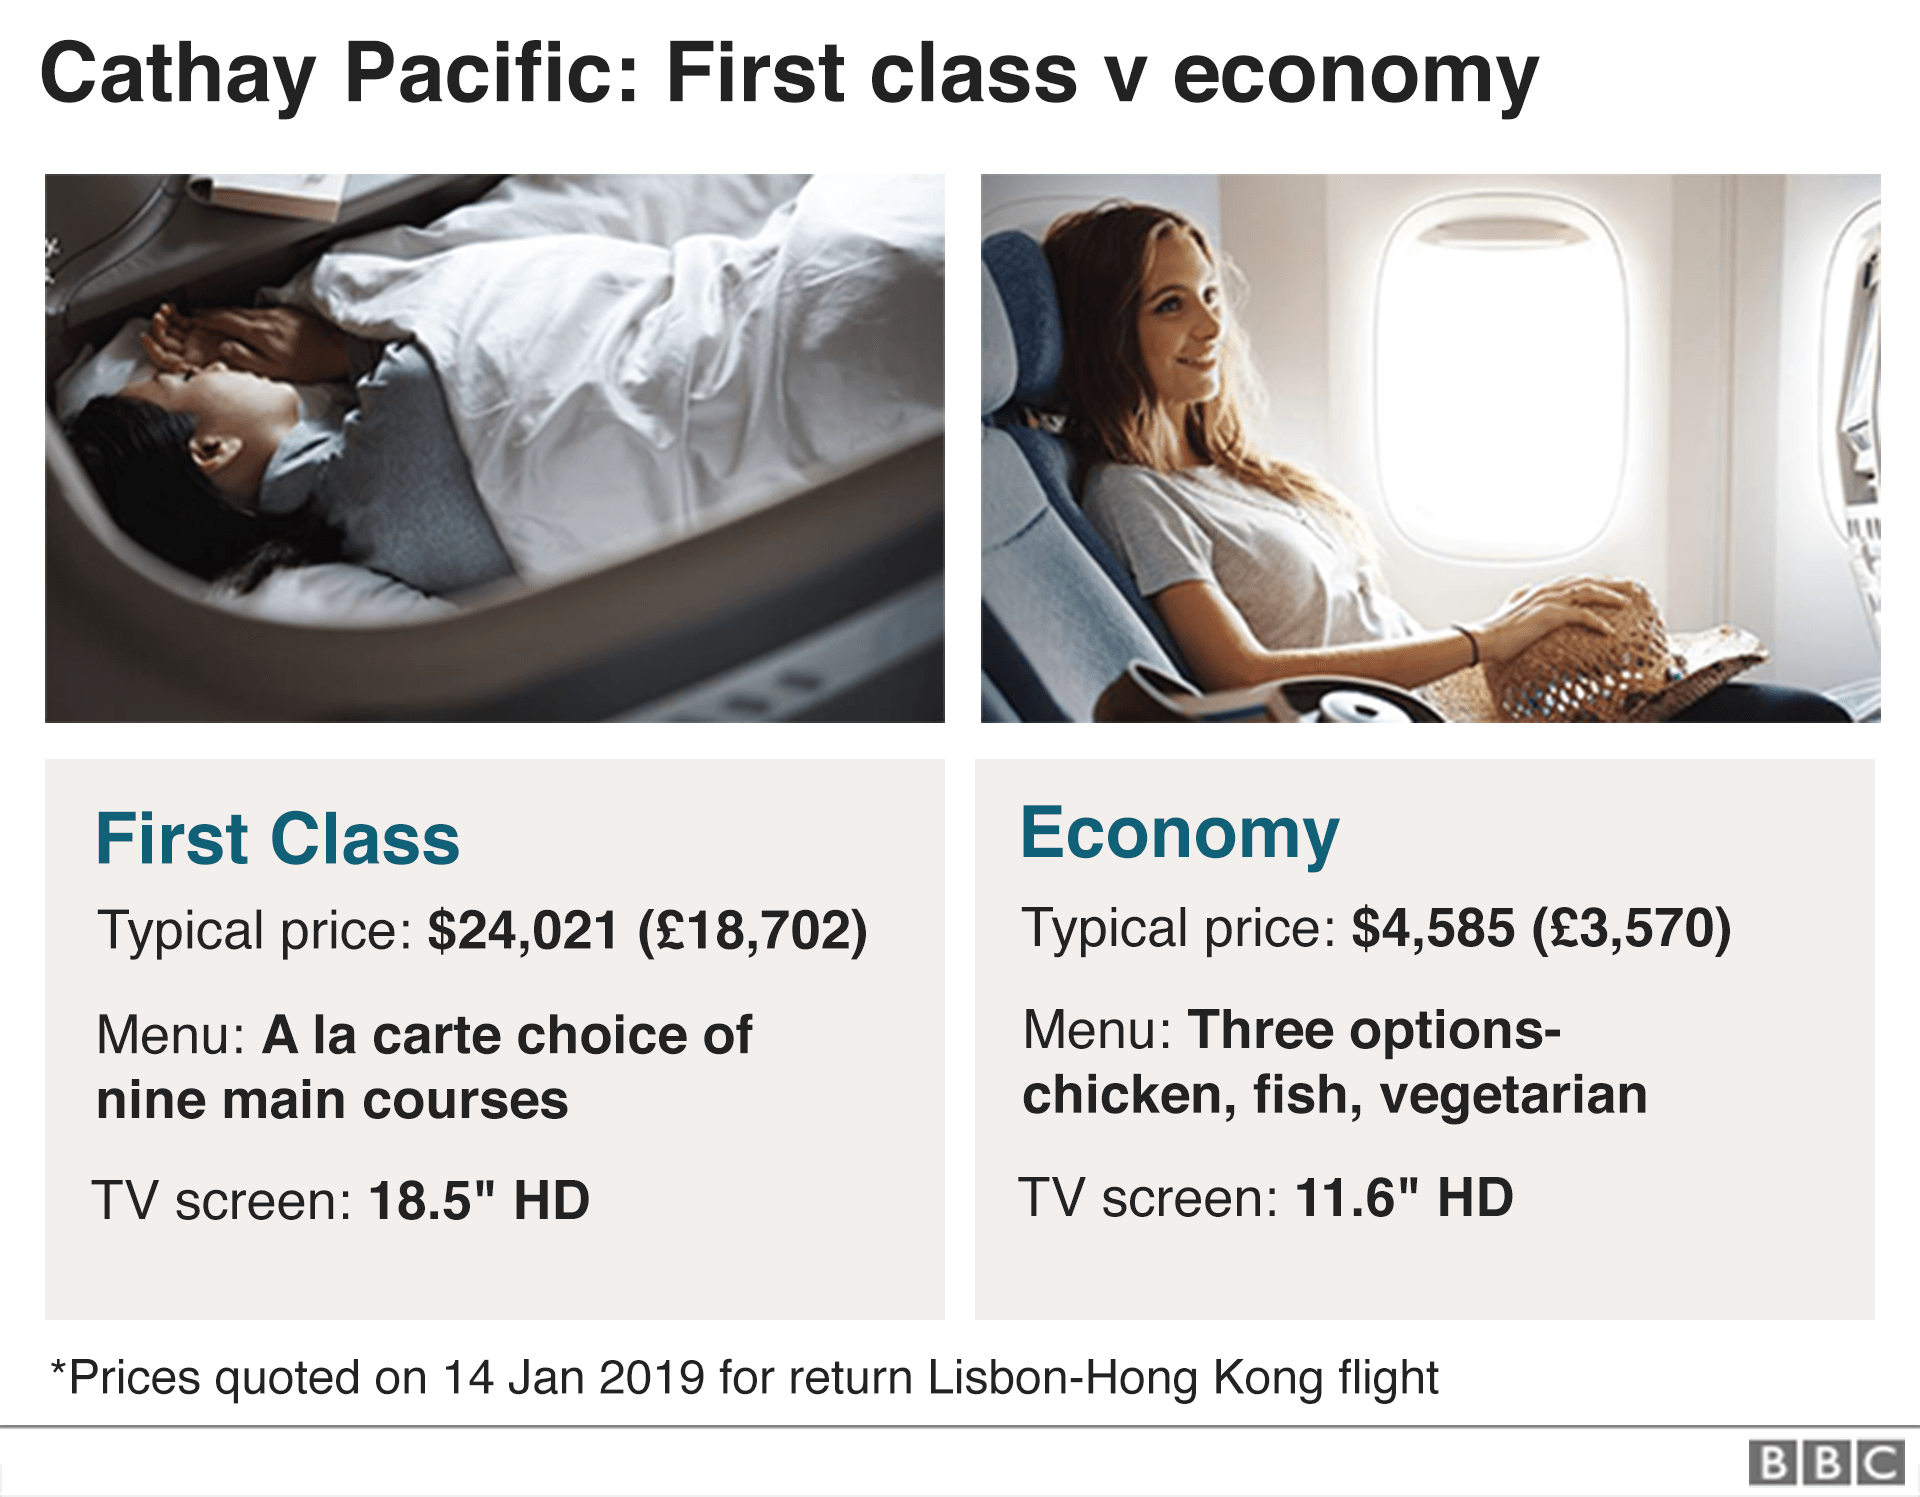 Cathay comparison first class and economy